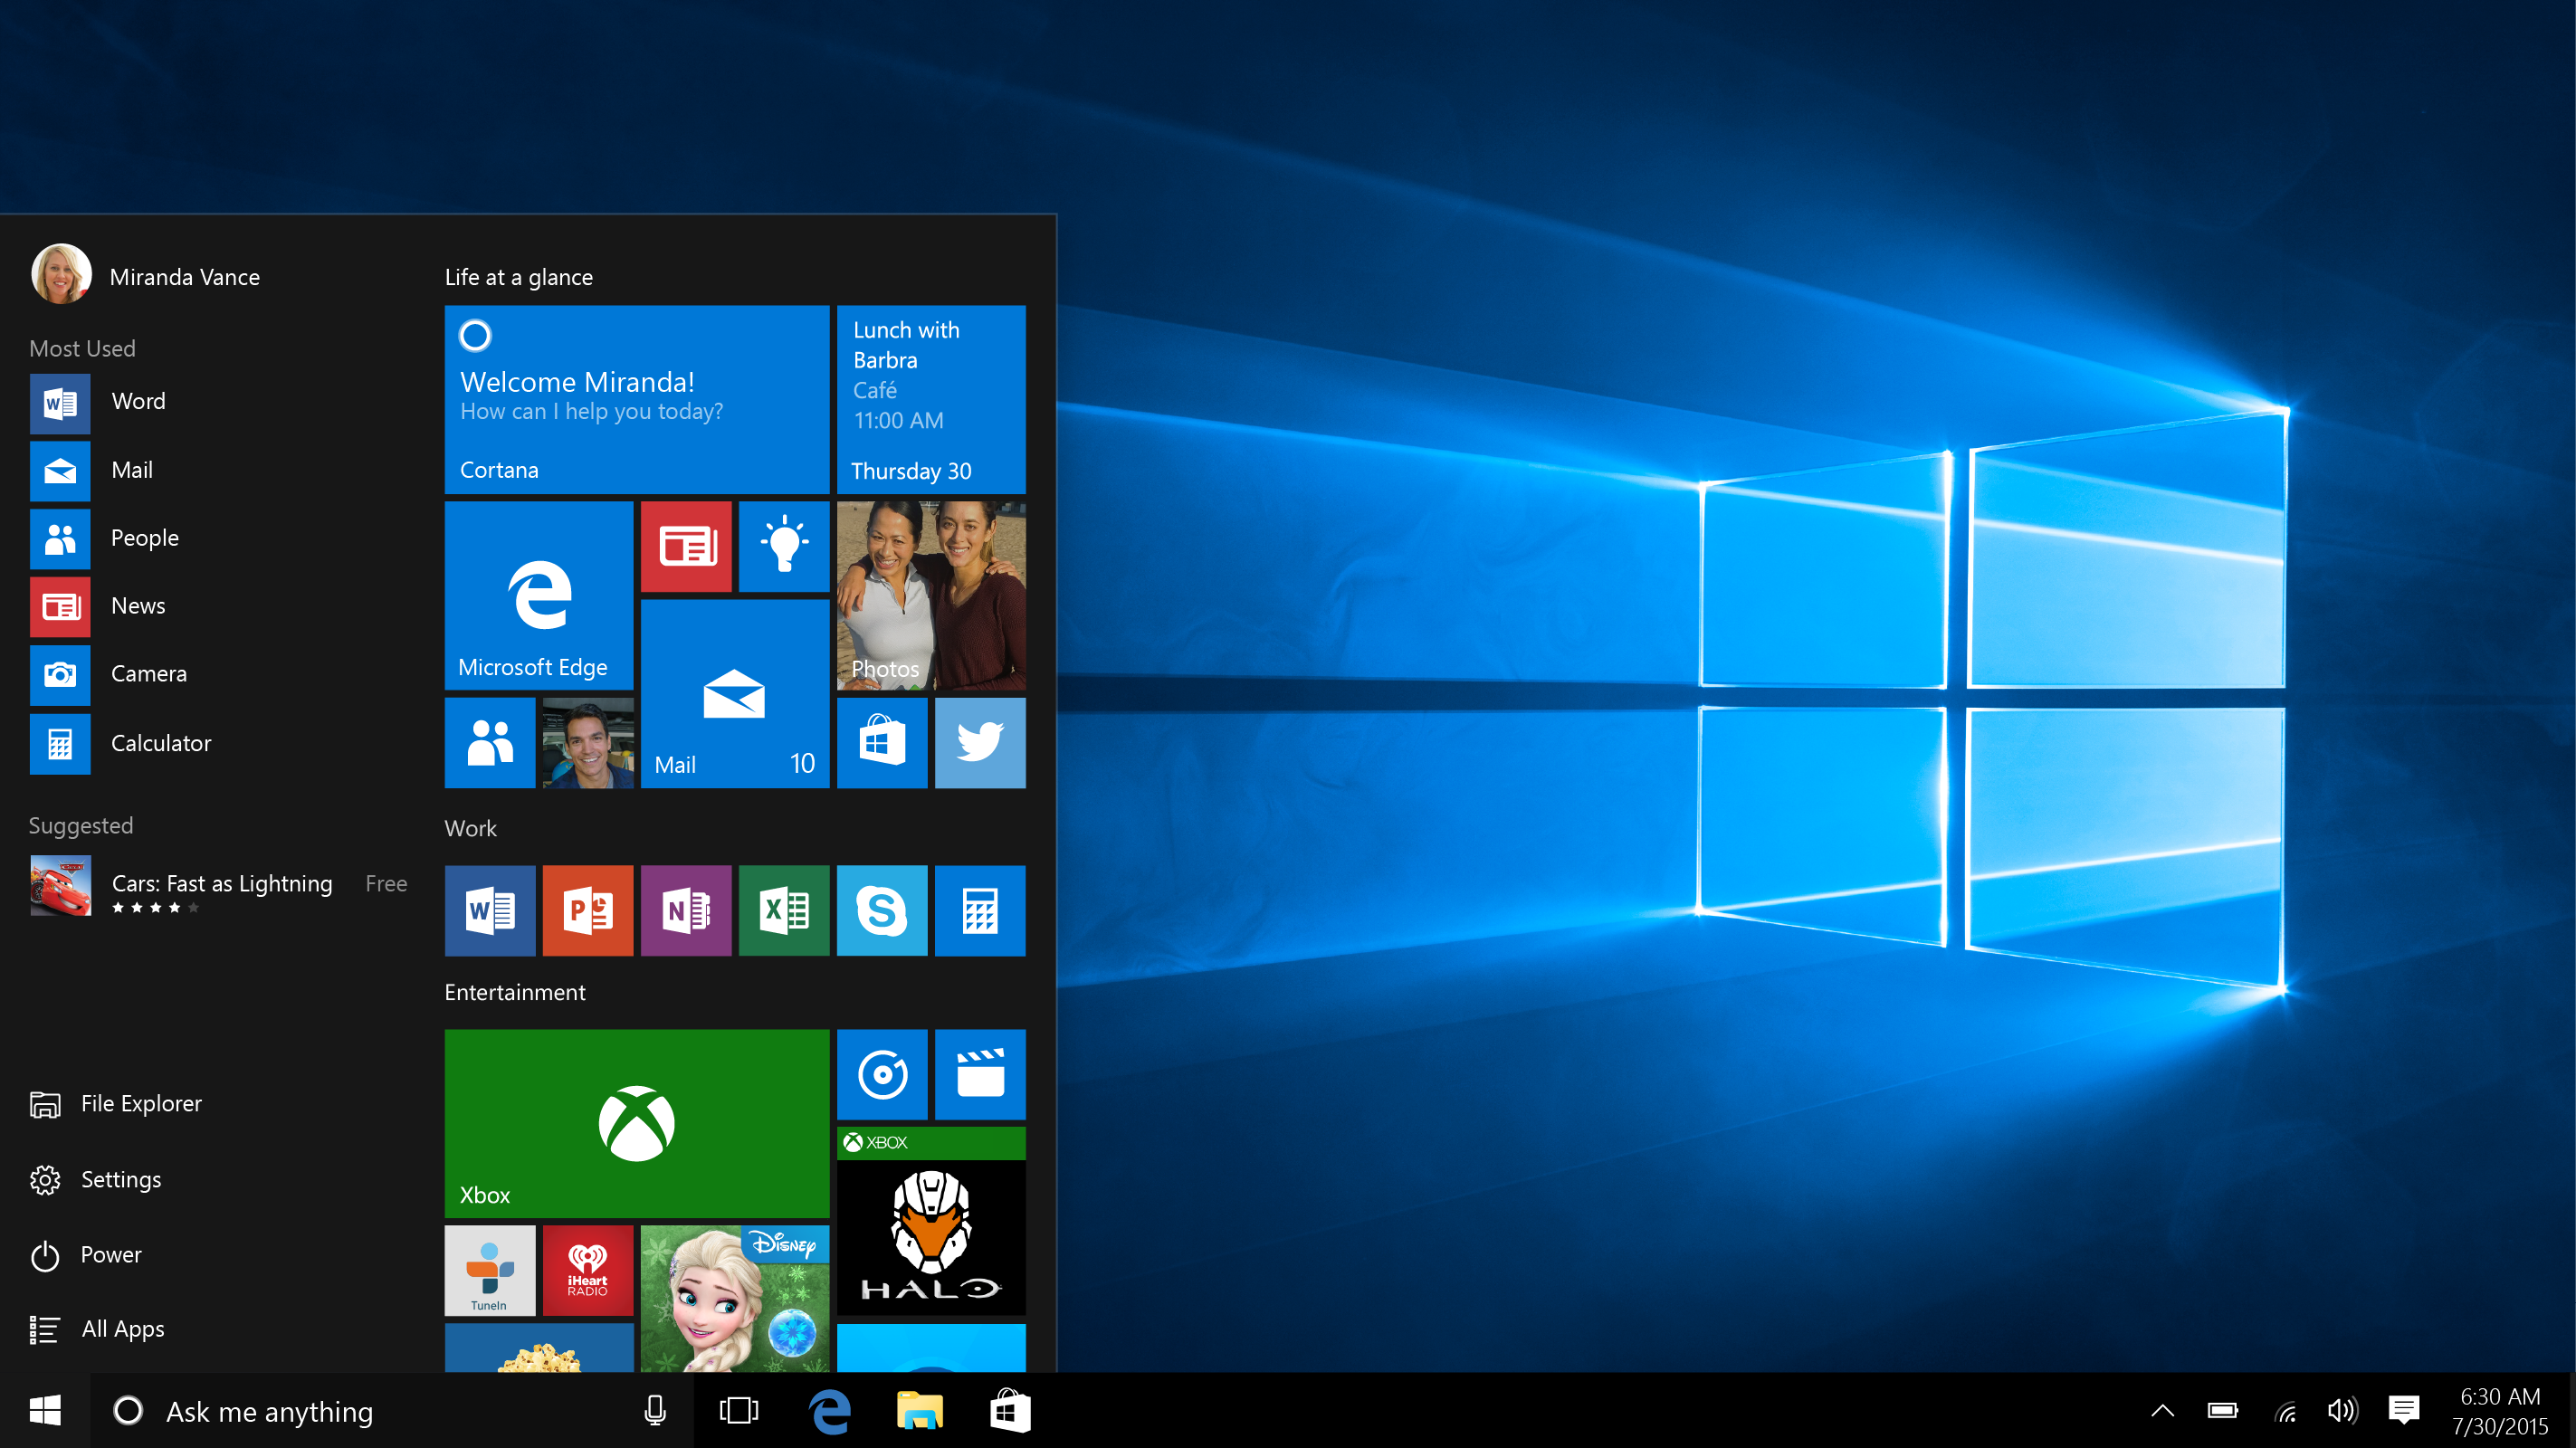 Good riddance! Microsoft confirms the Windows 10 1809 update will bite the dust in May